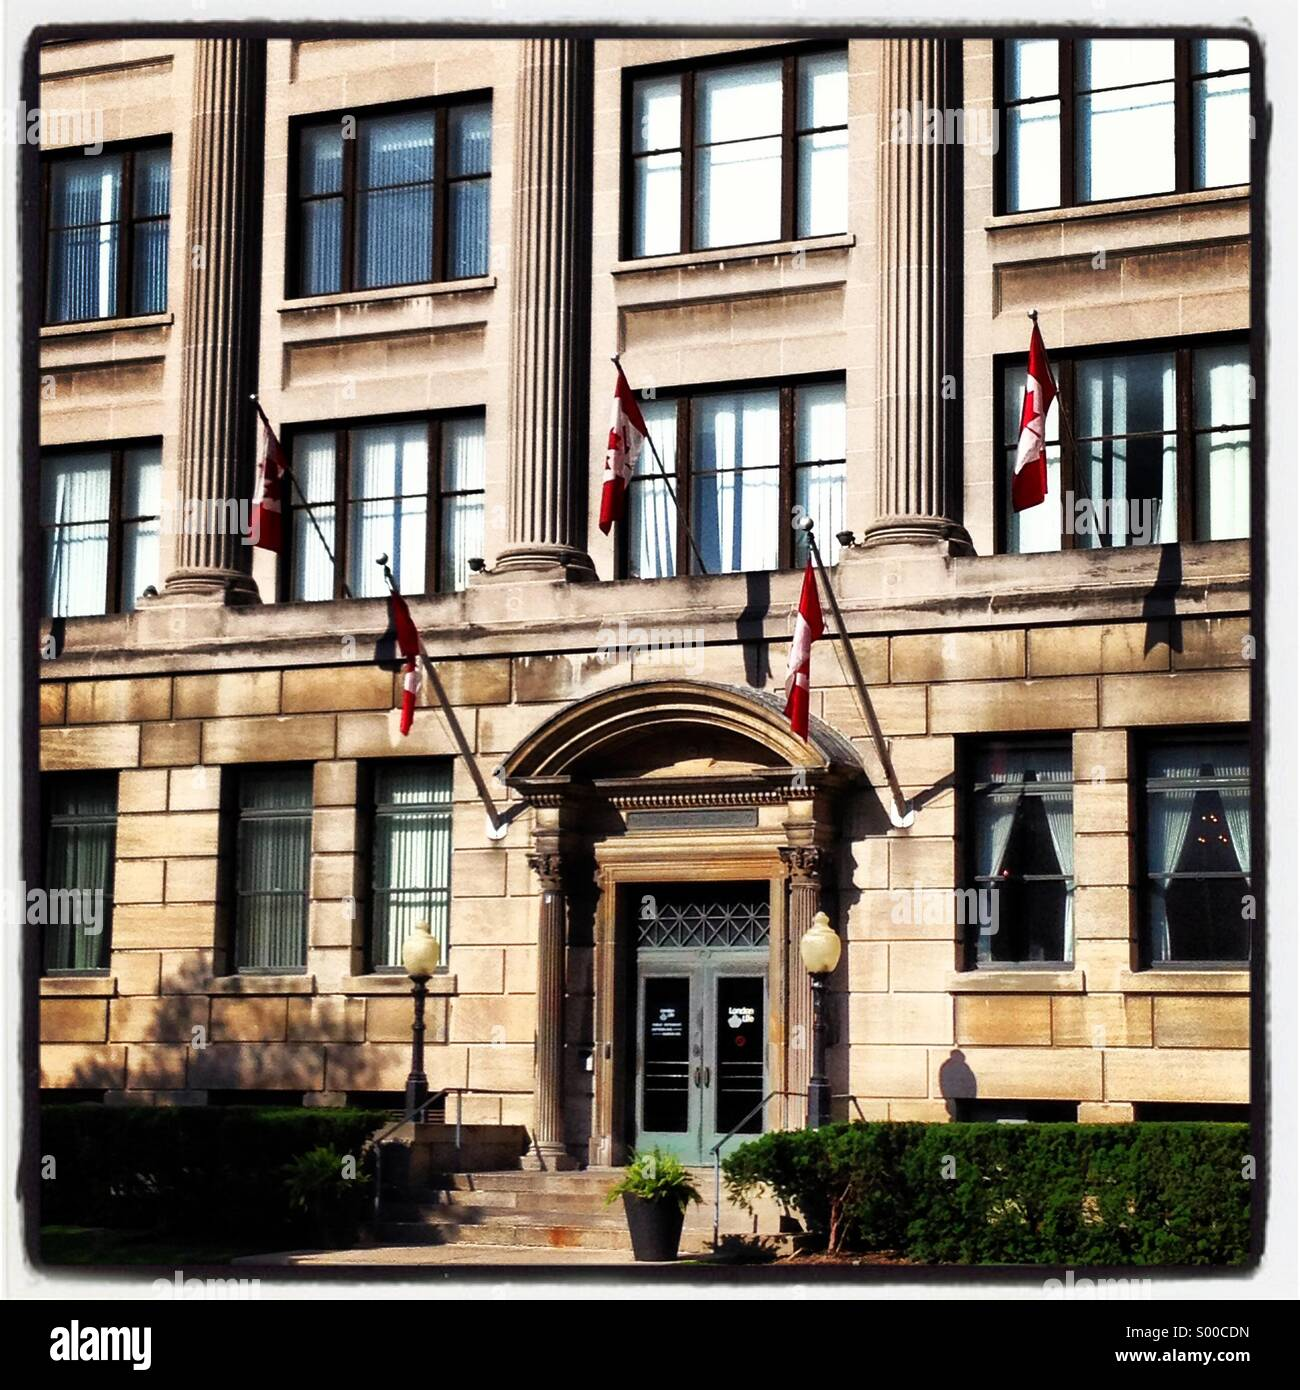 The London Life building in London Ontario, Canada. - Stock Image